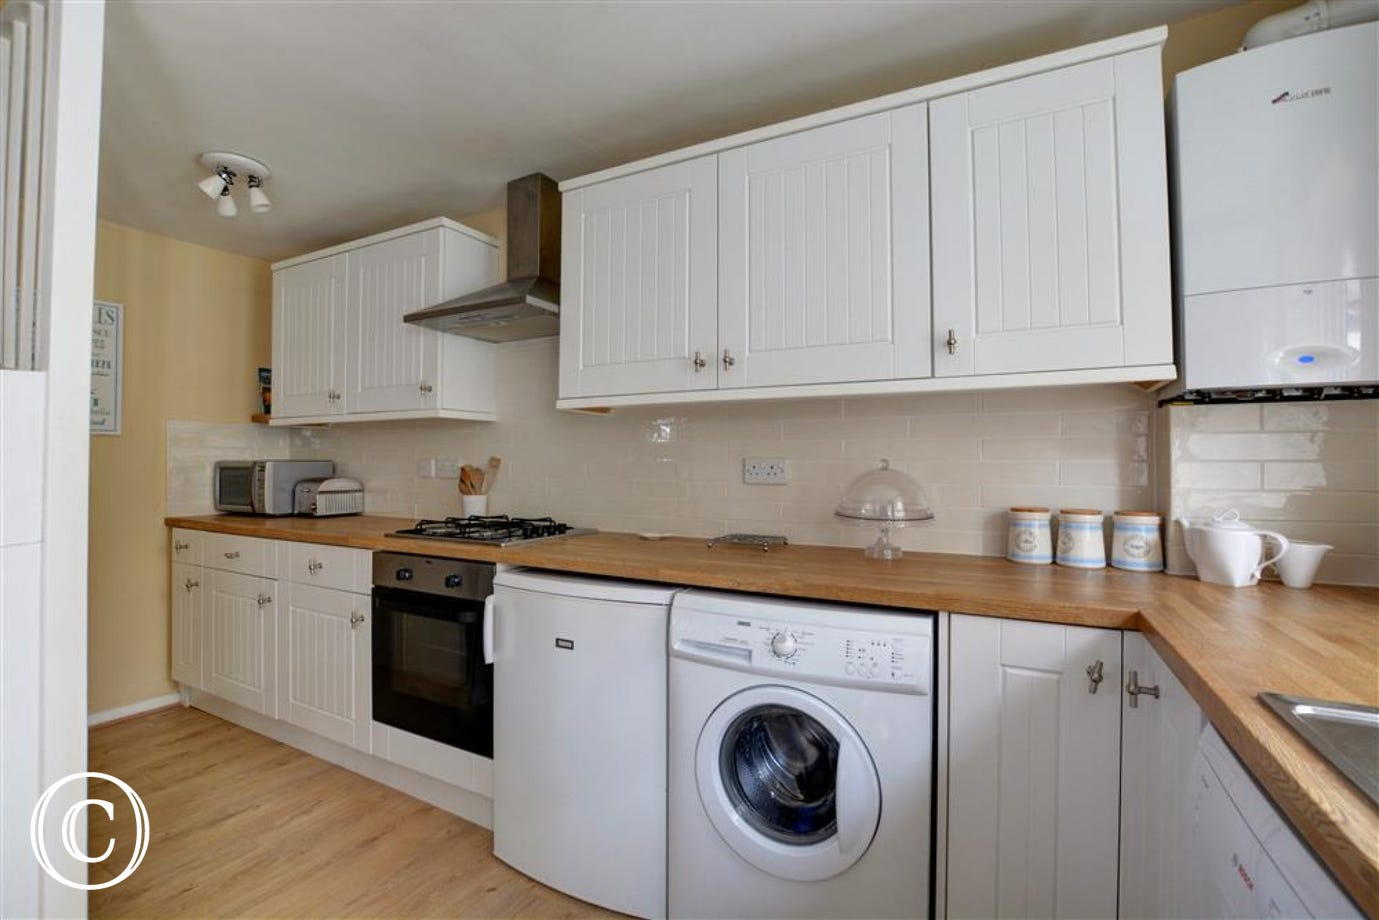 Kitchen with electric oven and gas hob